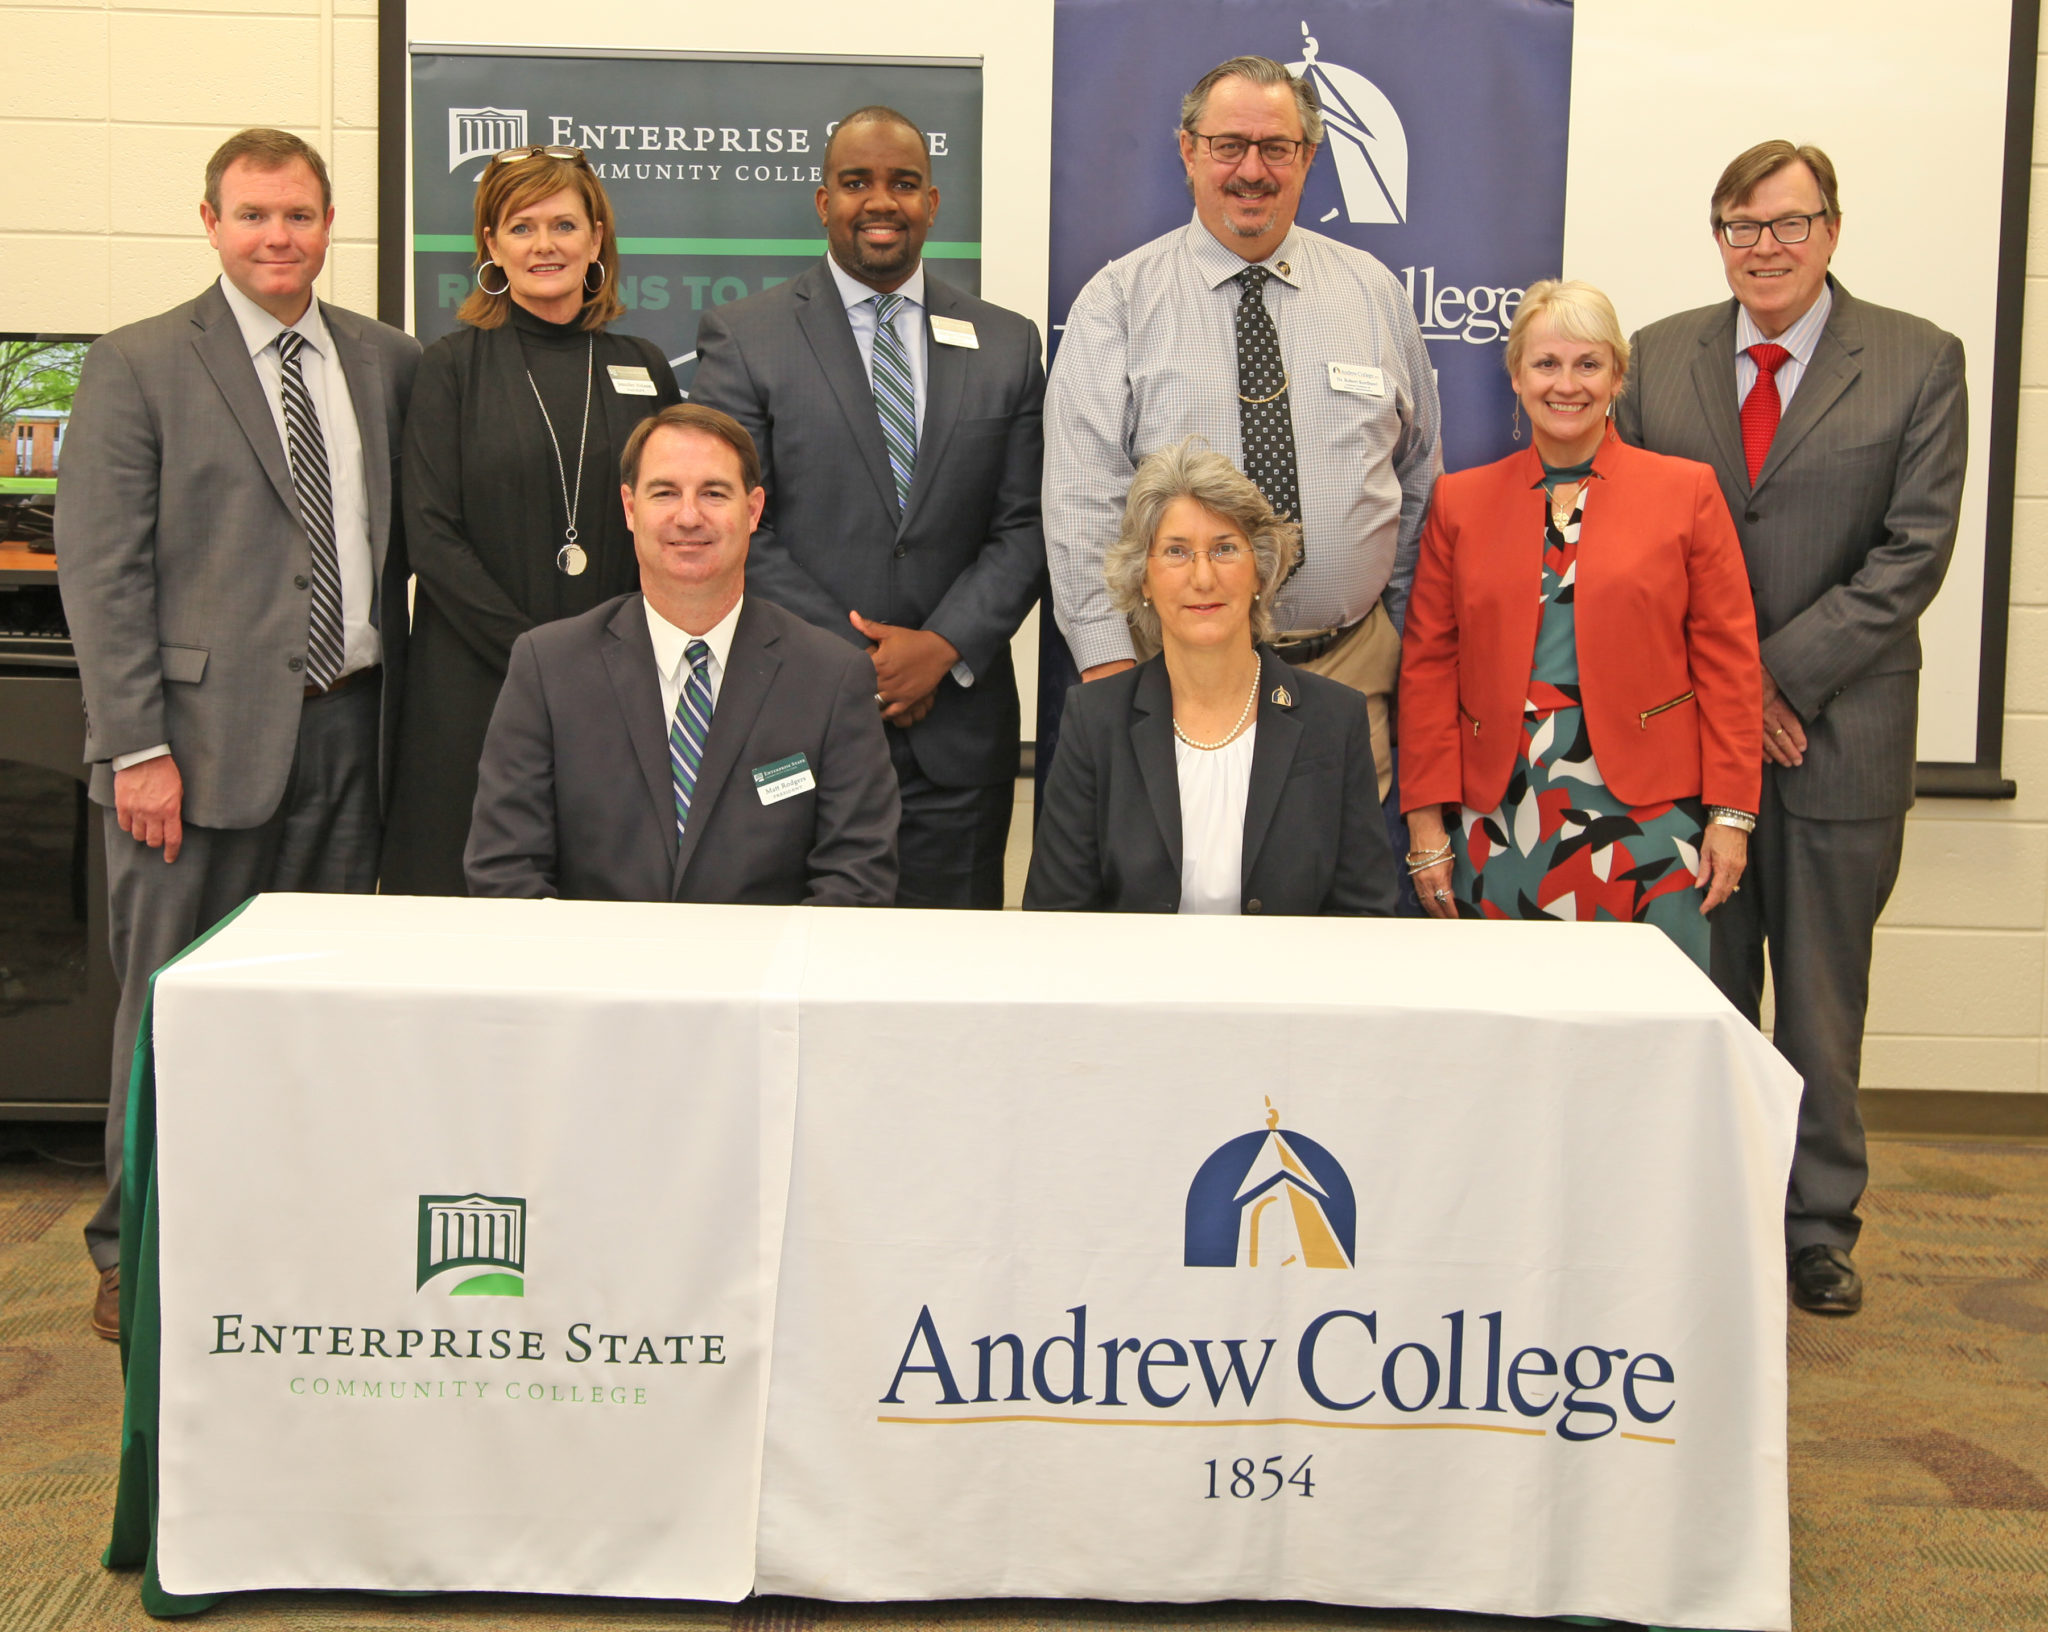 Enterprise State Community College and Andrew College sign articulation agreement